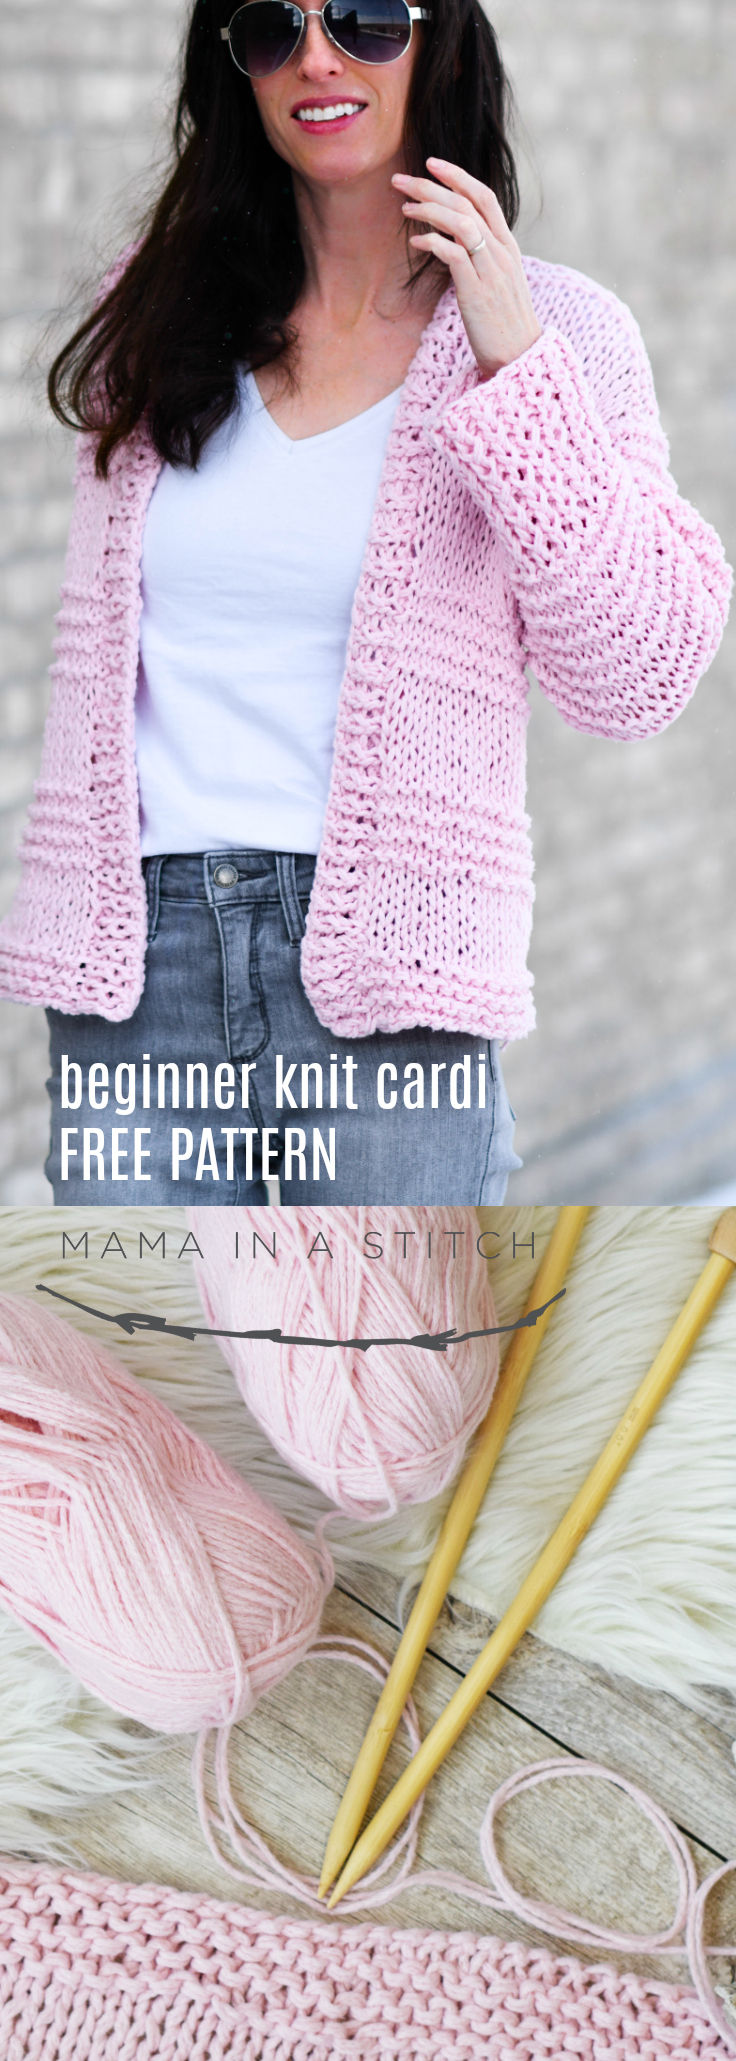 Free Knitted Cardigan Patterns Cotton Candy Easy Knit Cardigan Pattern Mama In A Stitch